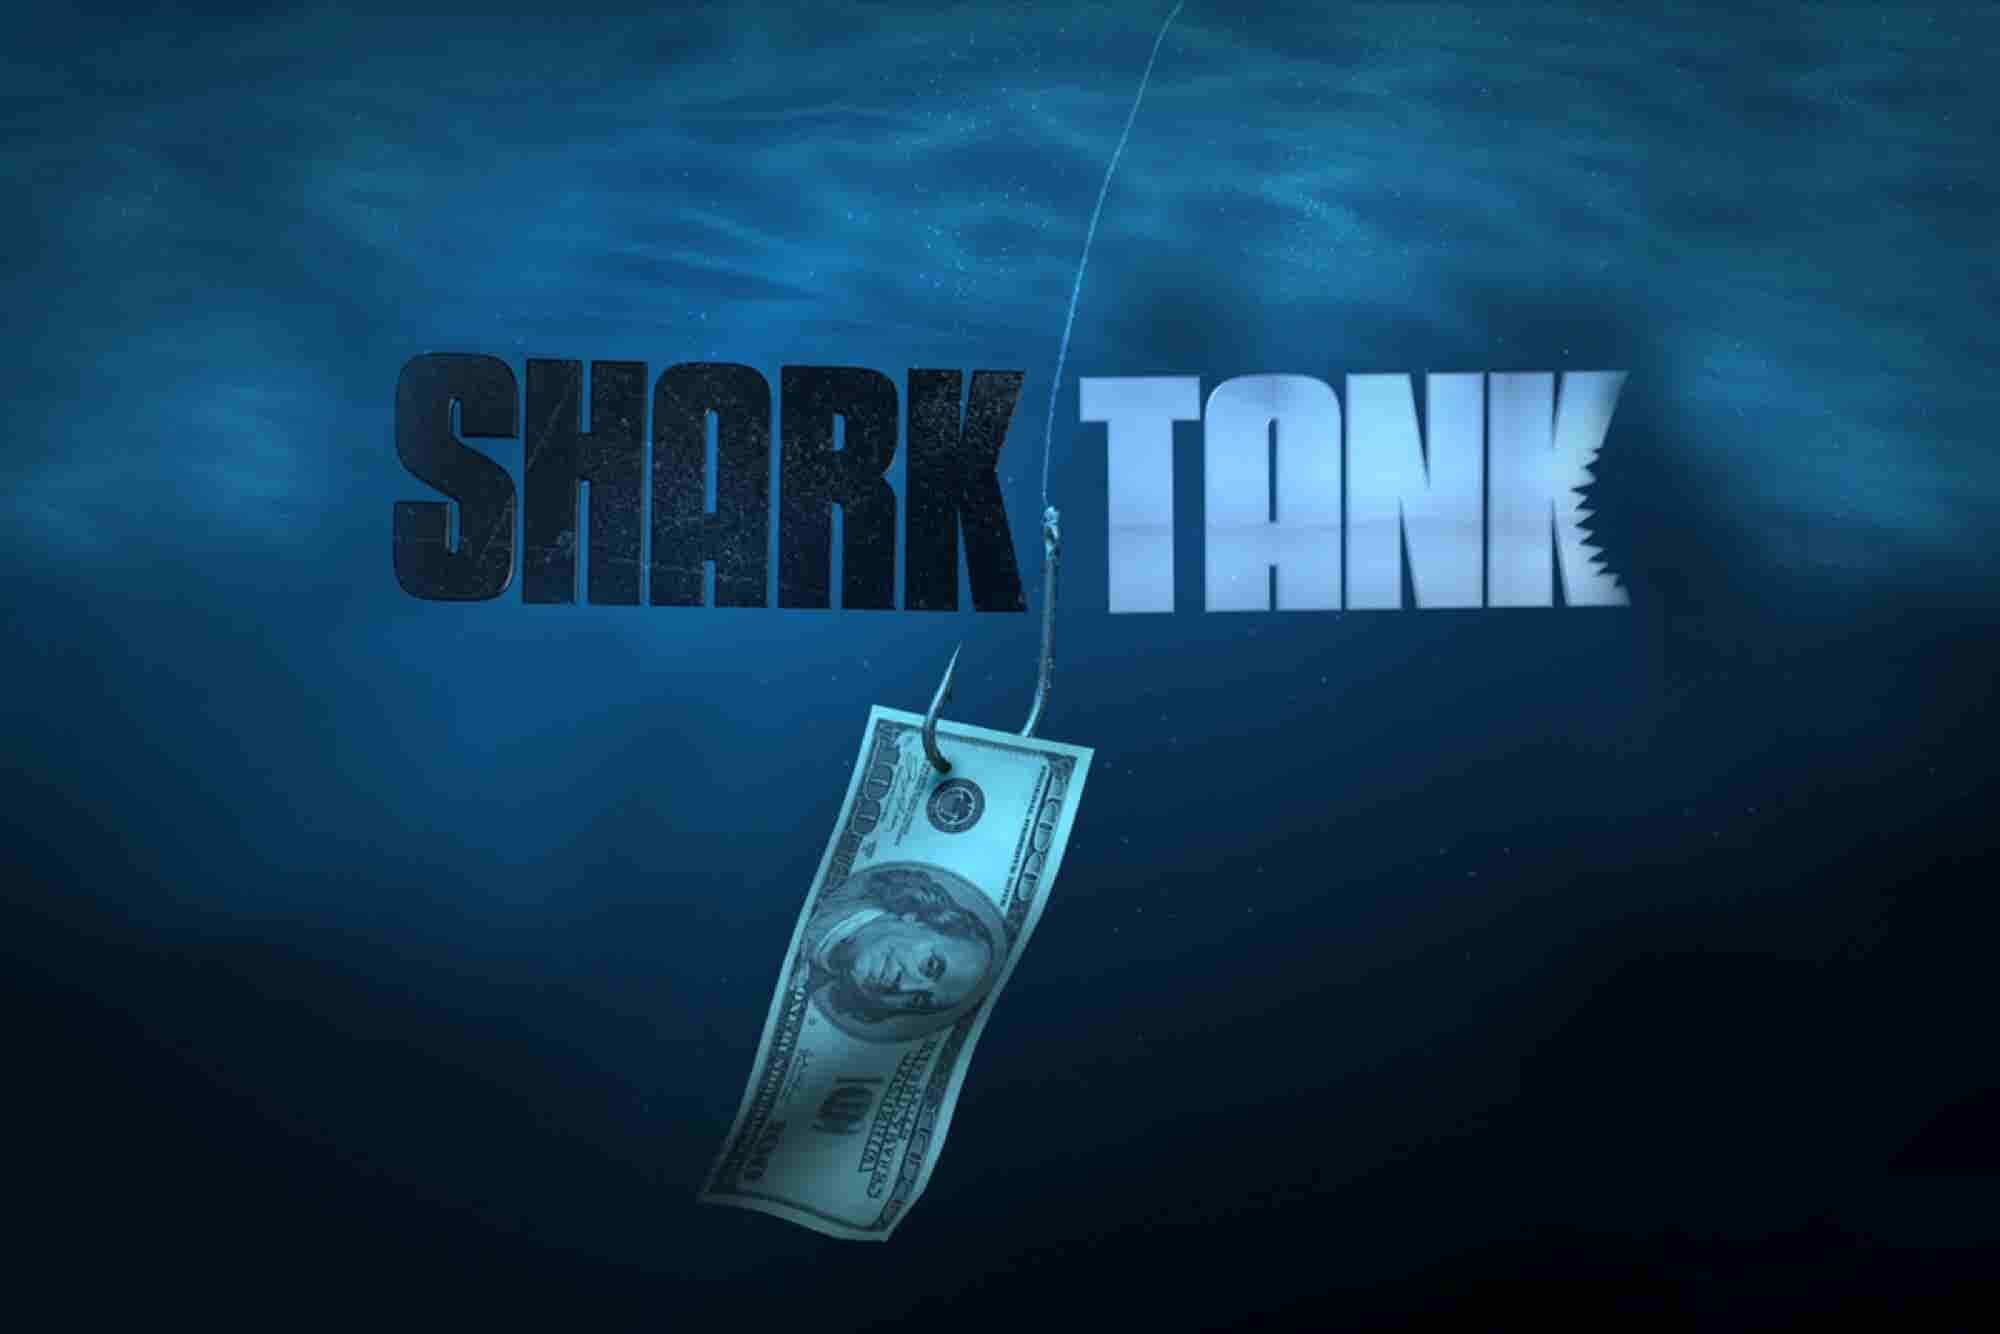 10 Shark Tank Quotes